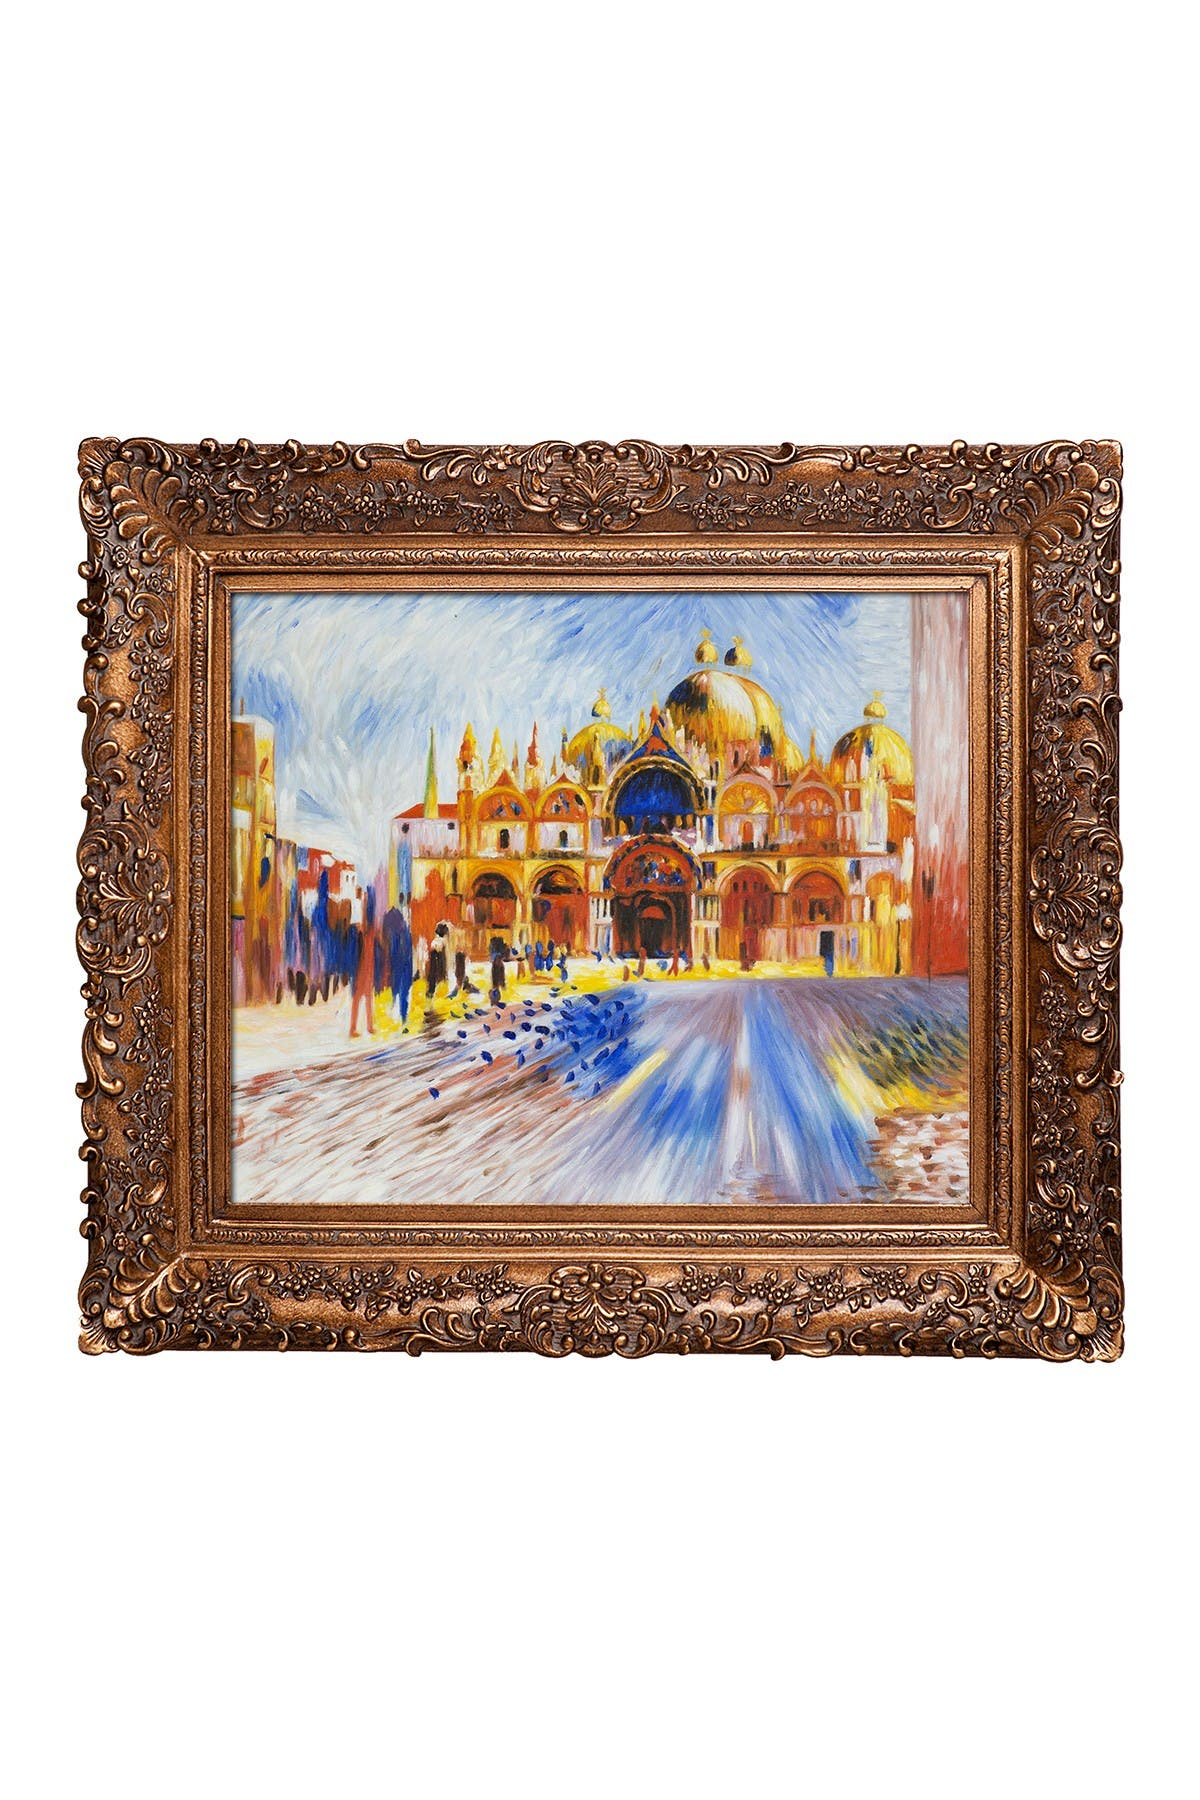 Image of Overstock Art The Piazza San Marco Venice, 1881 Framed Oil reproduction of an original painting by Pierre-Auguste Renoir